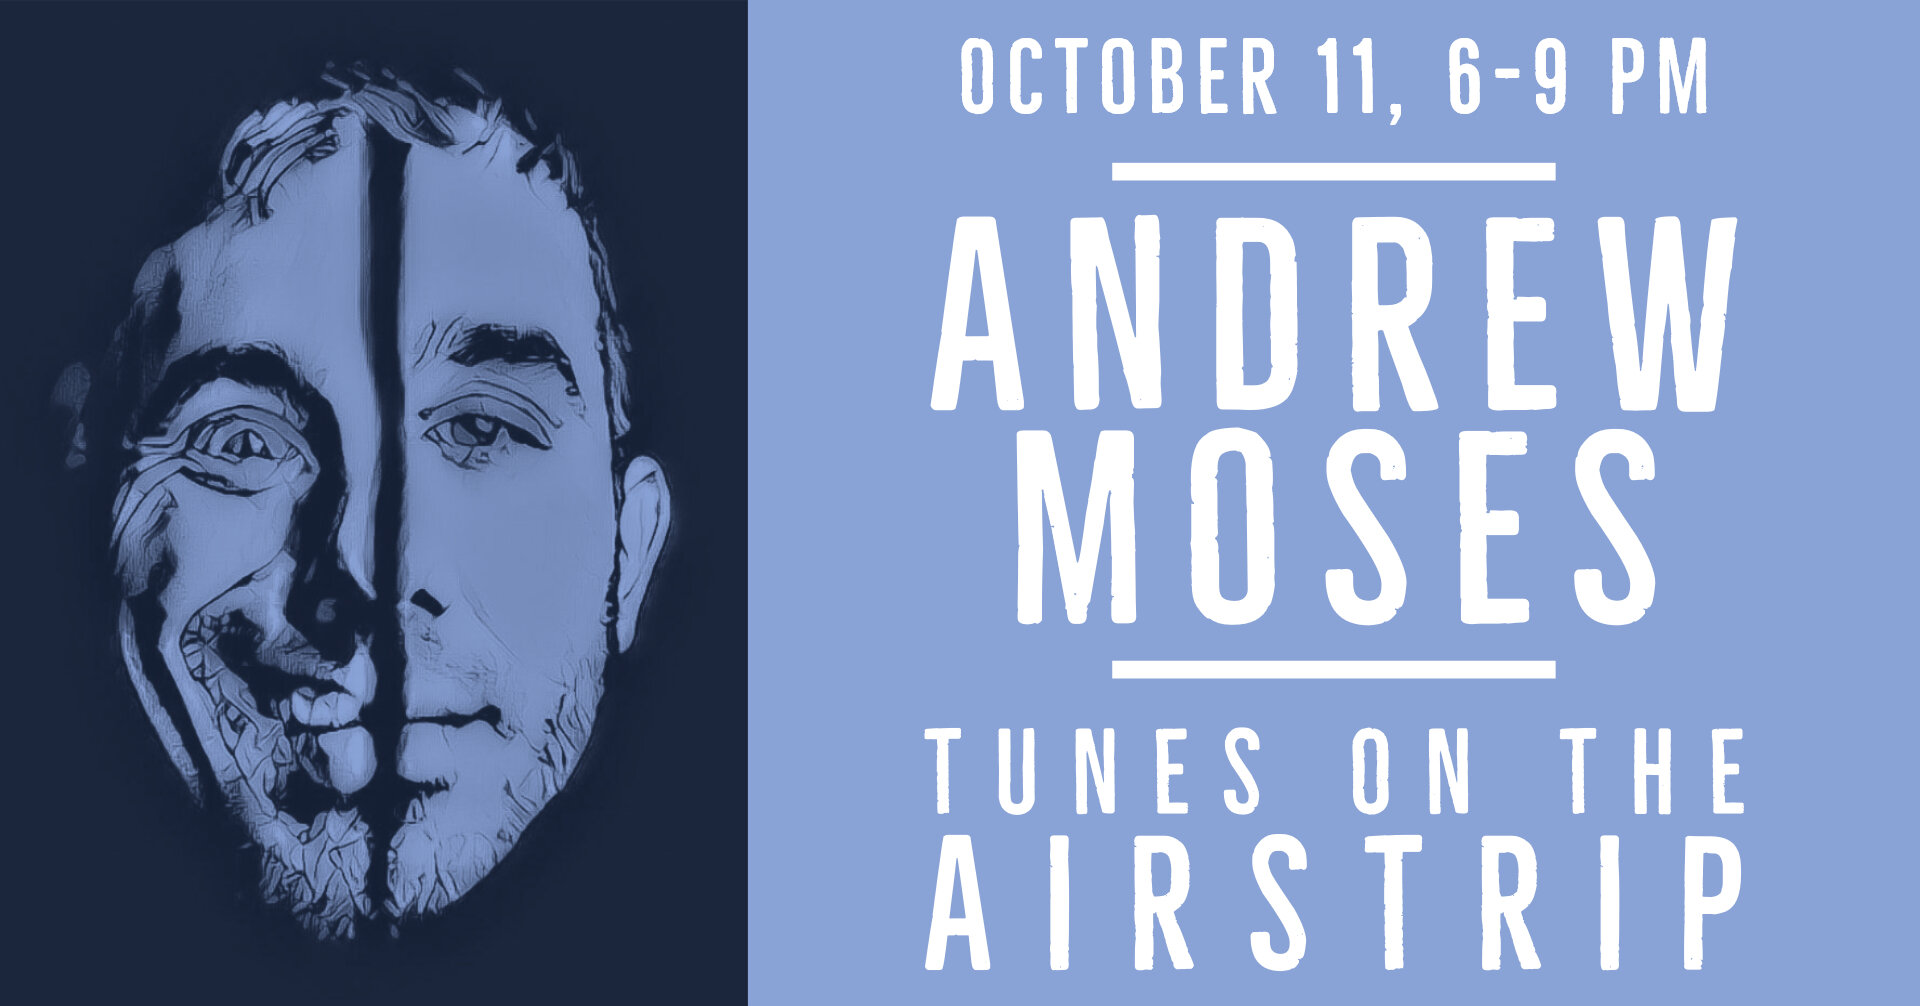 Andrew Moses plays Silverback from 6-9 p.m. October 11! Enjoy $3 off full-size cocktails during happy hour from 6-8 p.m.! Excludes smoked cocktails.